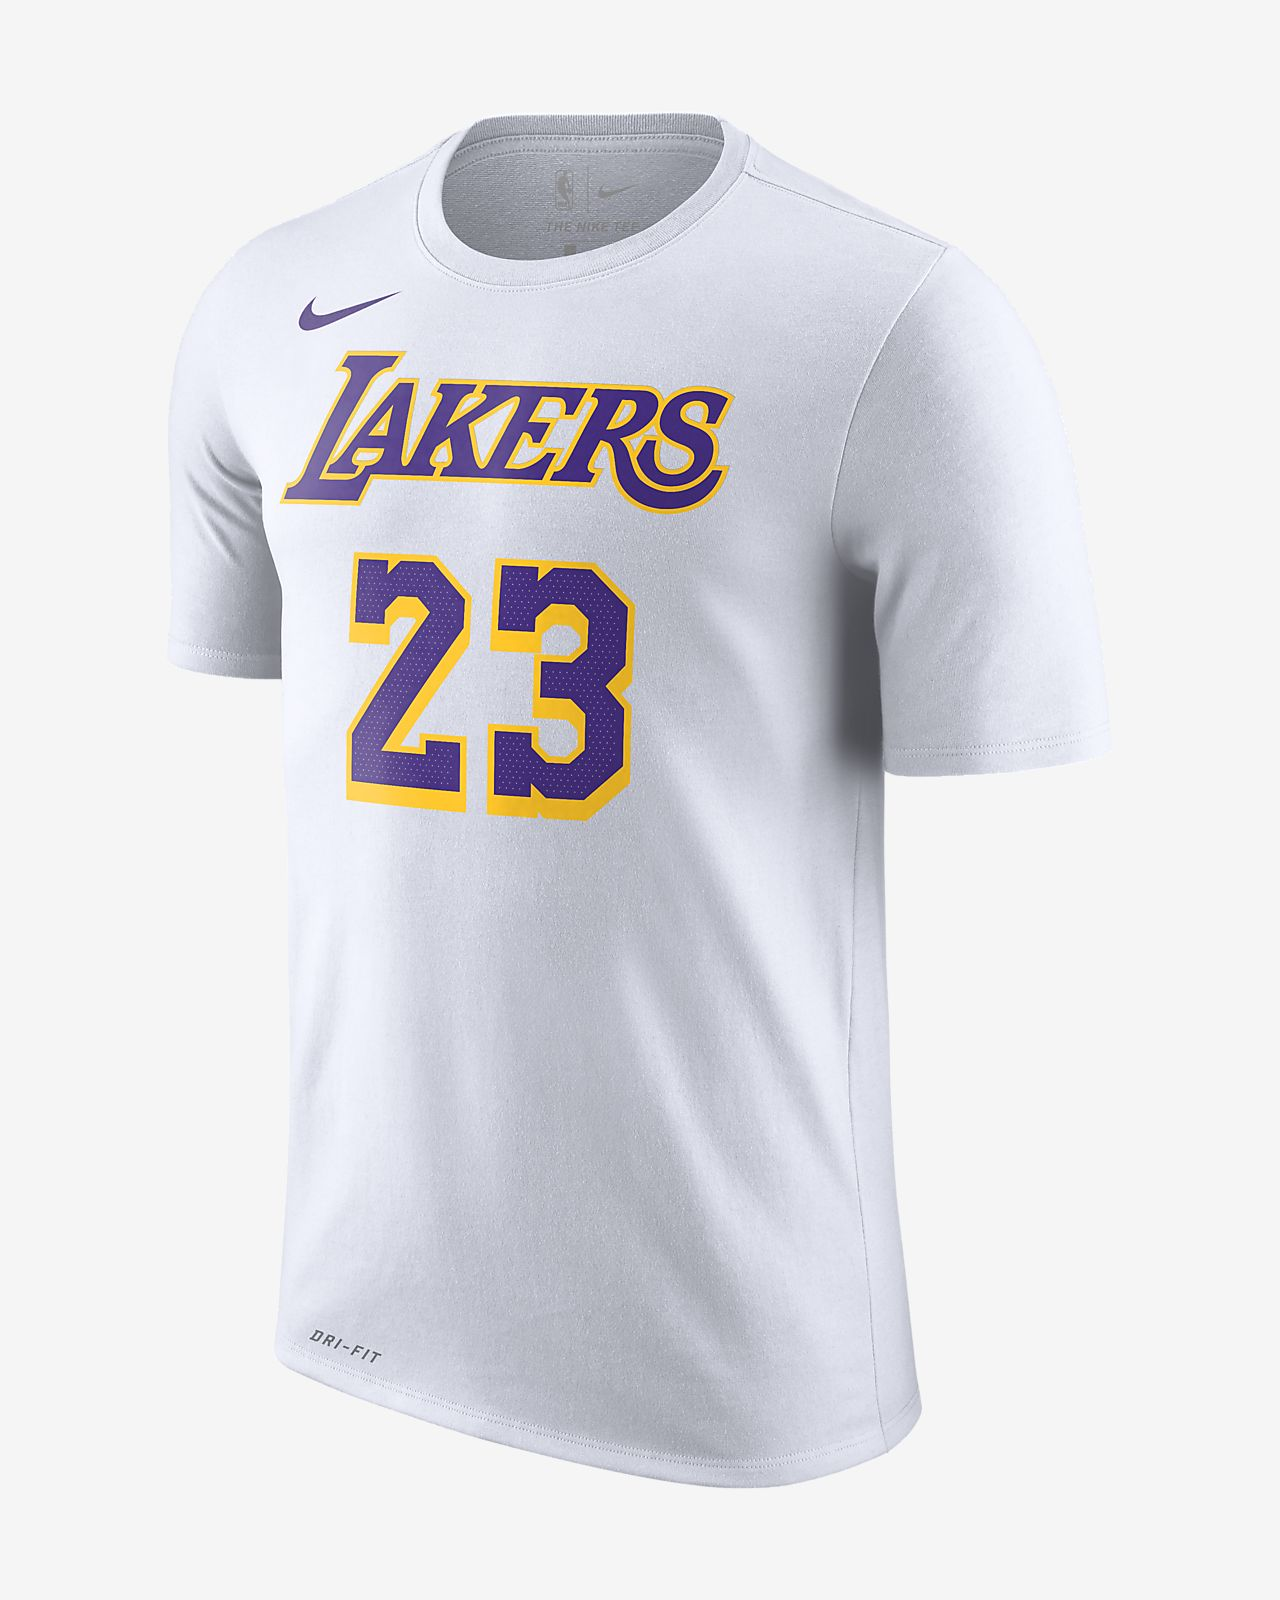 6518f8bc8cc8 Los Angeles Lakers Nike Dri-FIT Men s NBA T-Shirt. Nike.com ZA